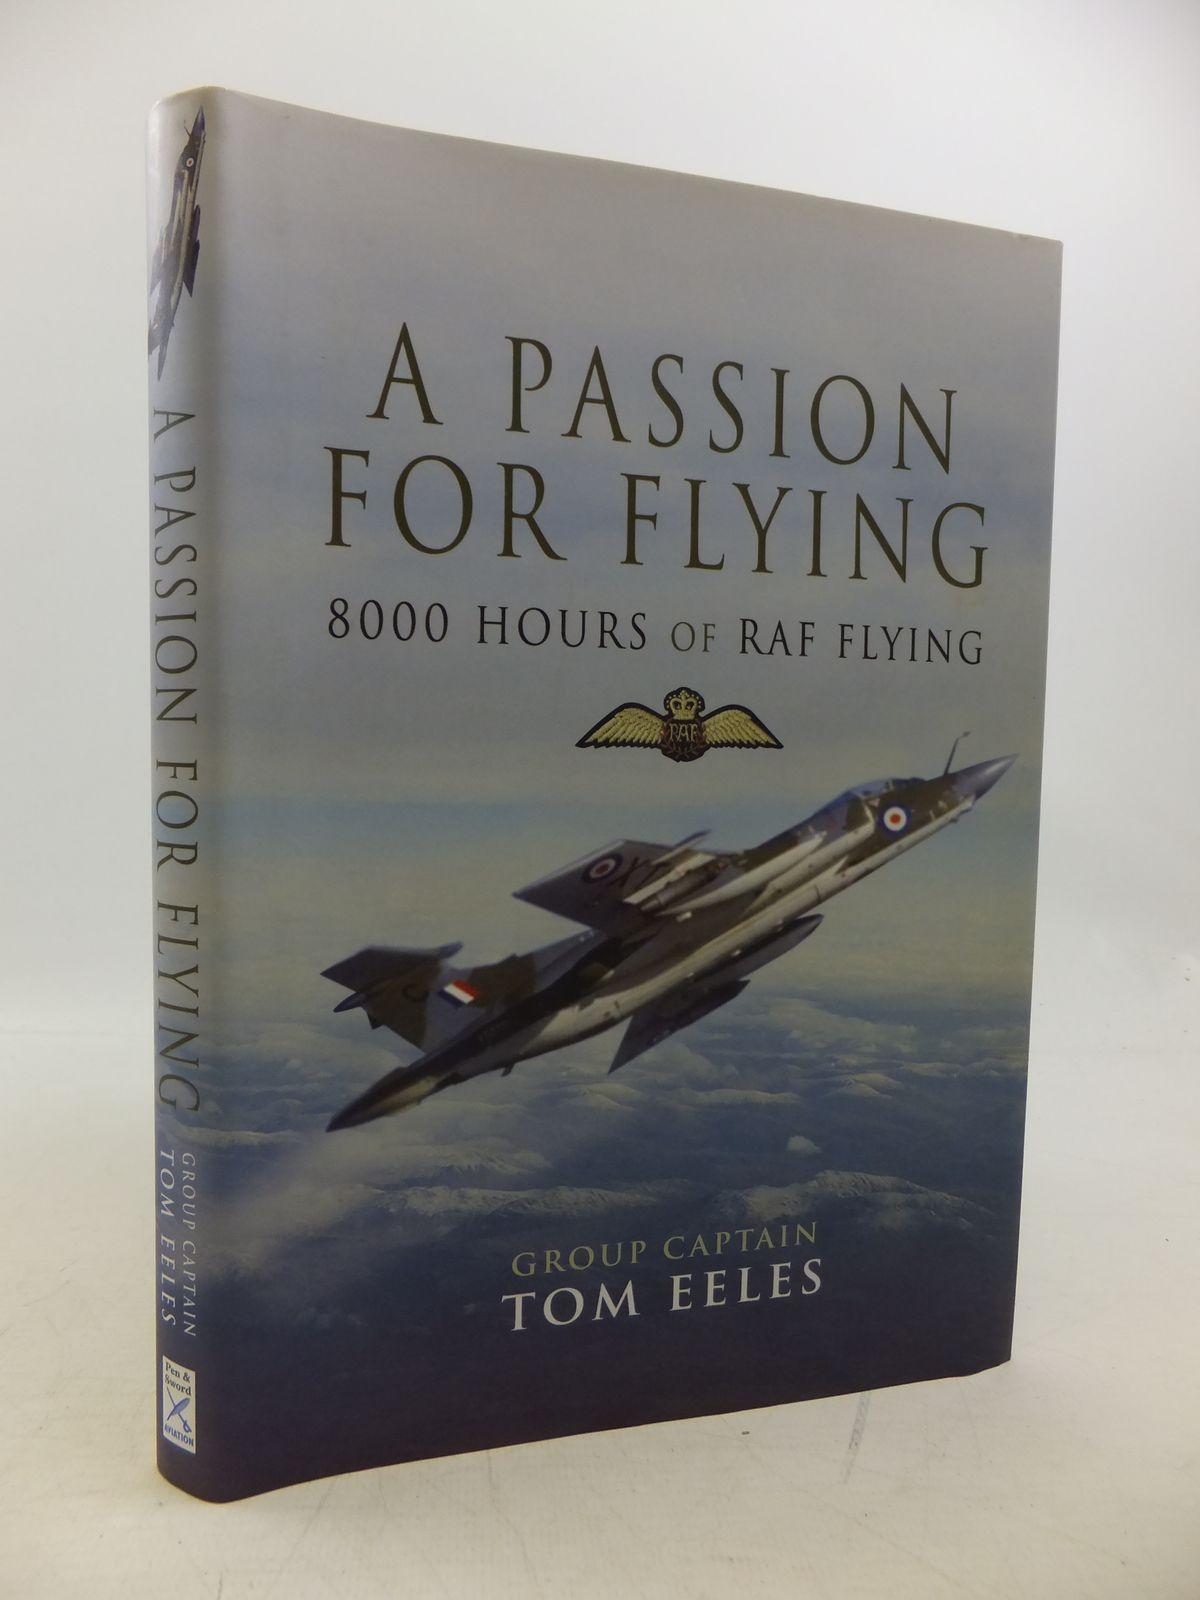 Photo of A PASSION FOR FLYING 8000 HOURS OF RAF FLYING- Stock Number: 2120269